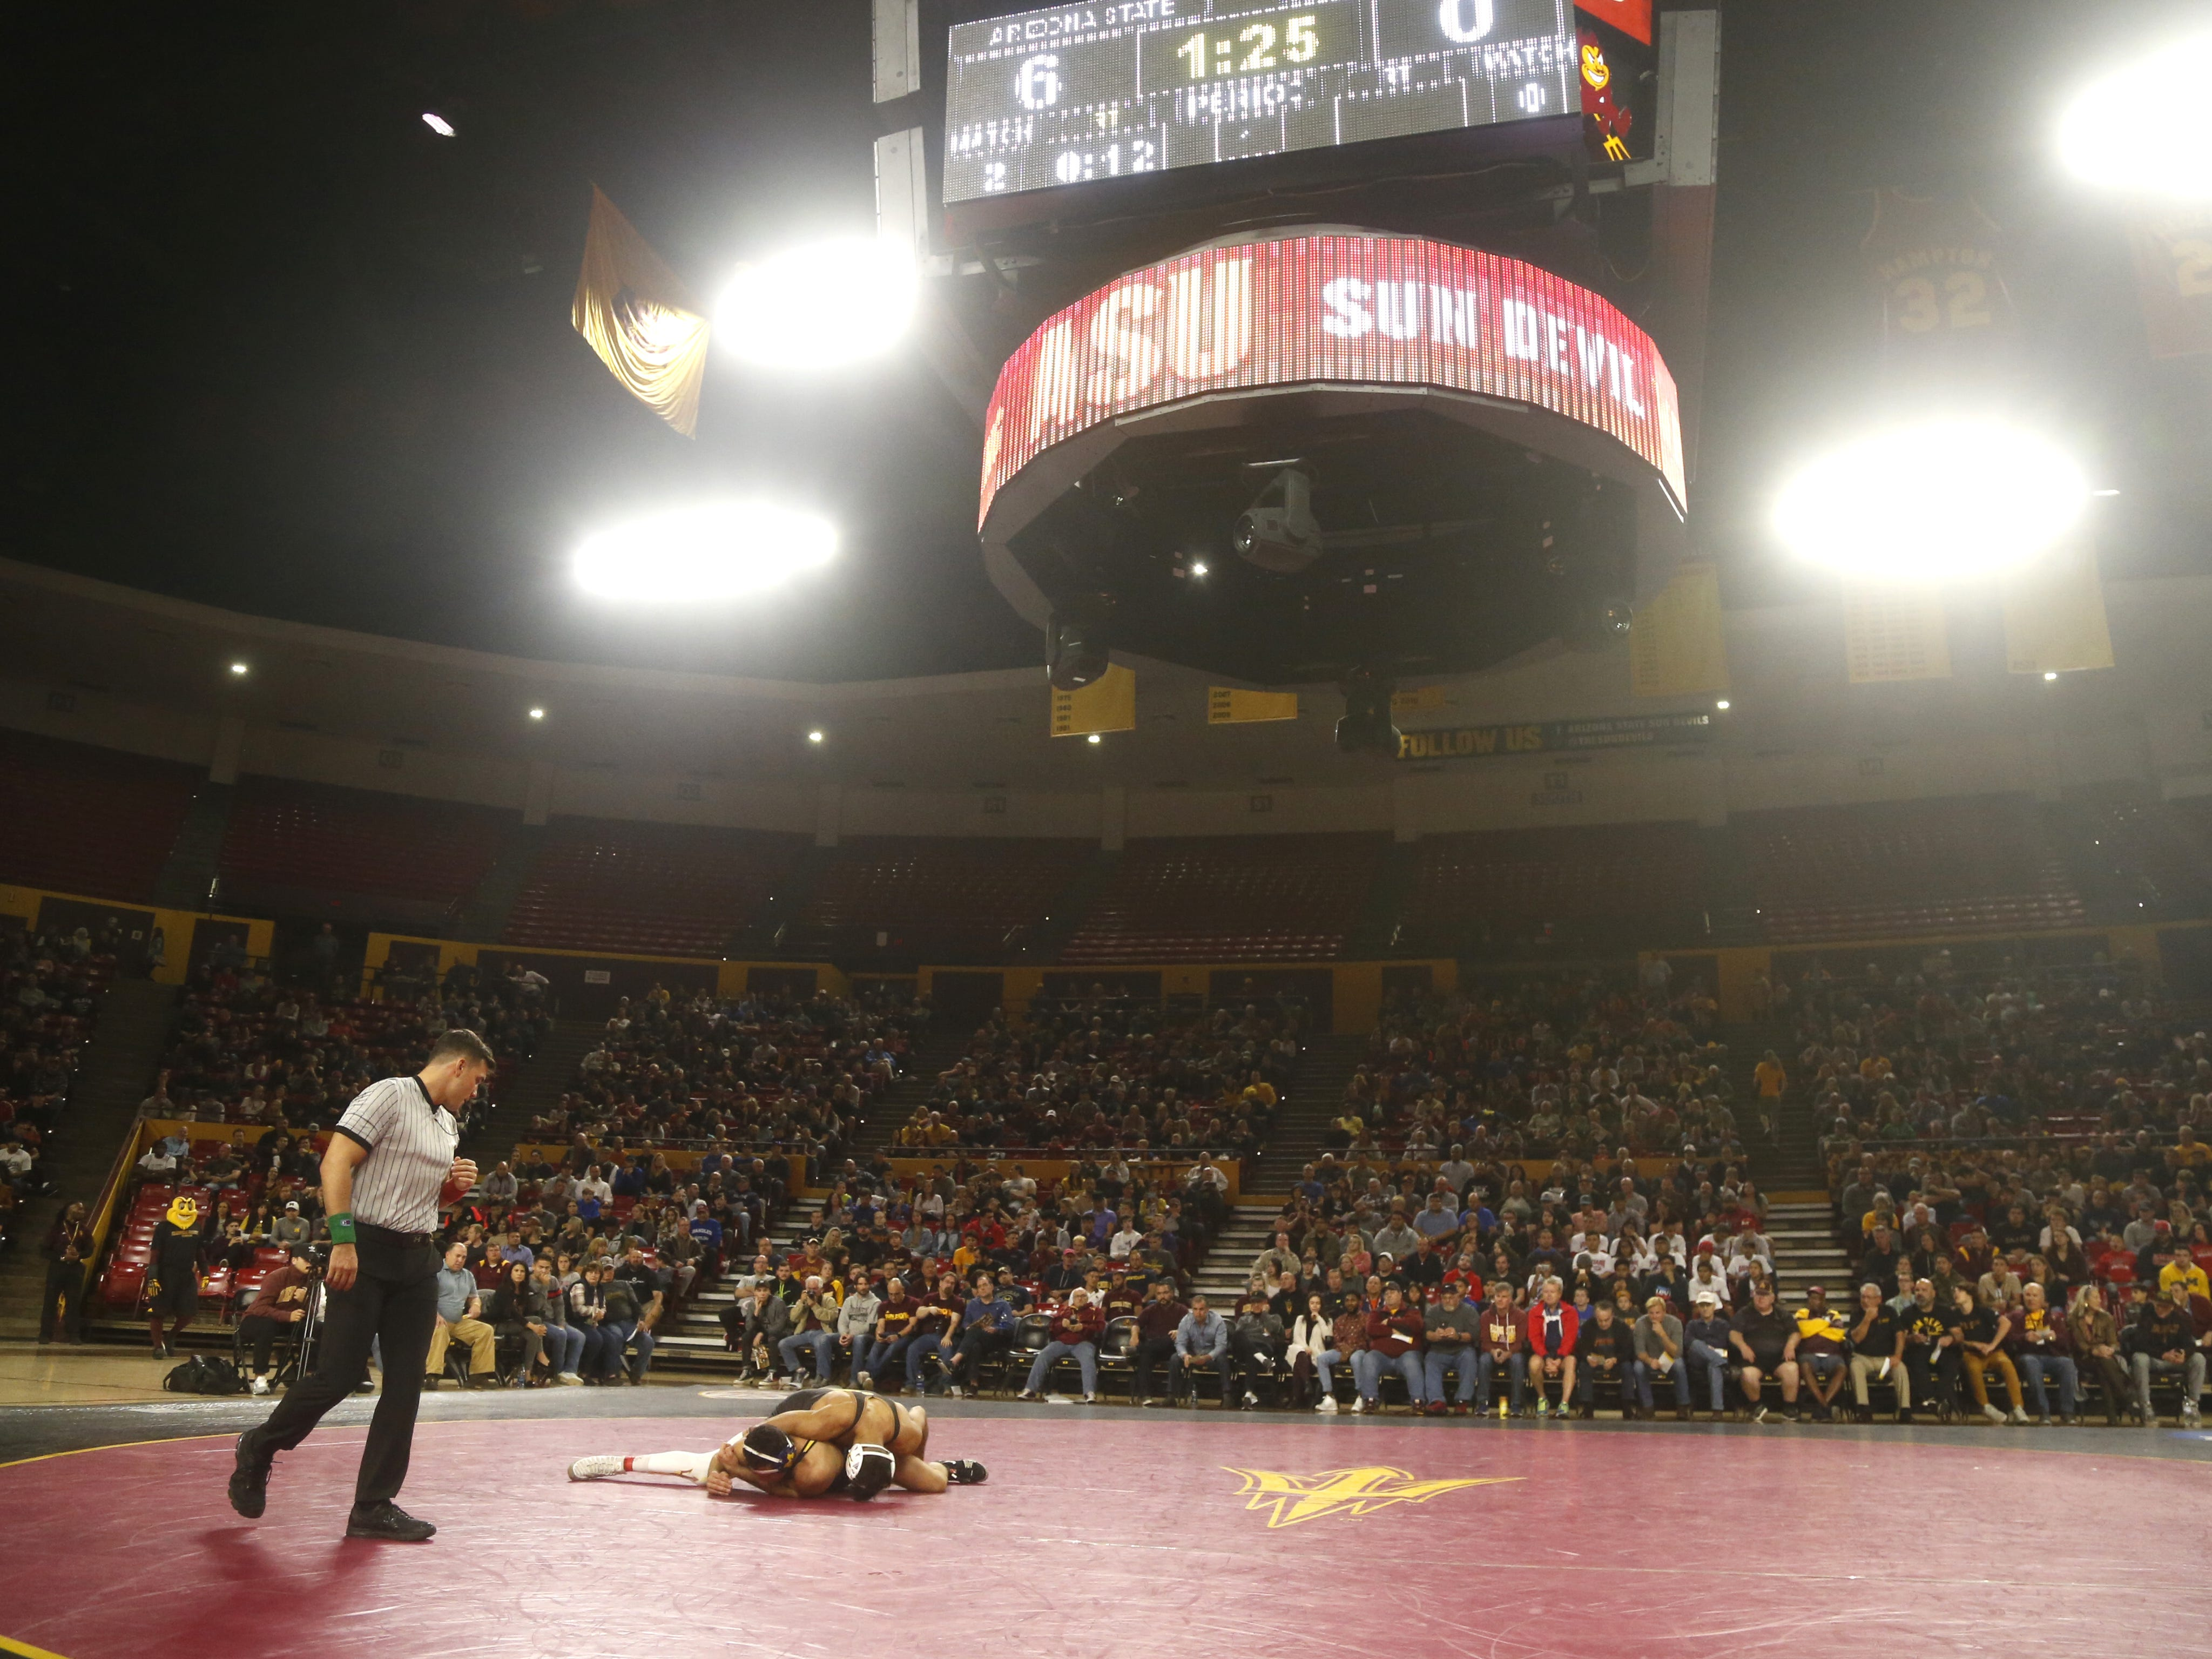 ASU's Josh Shields (in black) wrestles Michigan's Logan Massa (in yellow and blue) during a 165 lbs match at Wells Fargo Arena in Tempe, Ariz. on January 5, 2019.